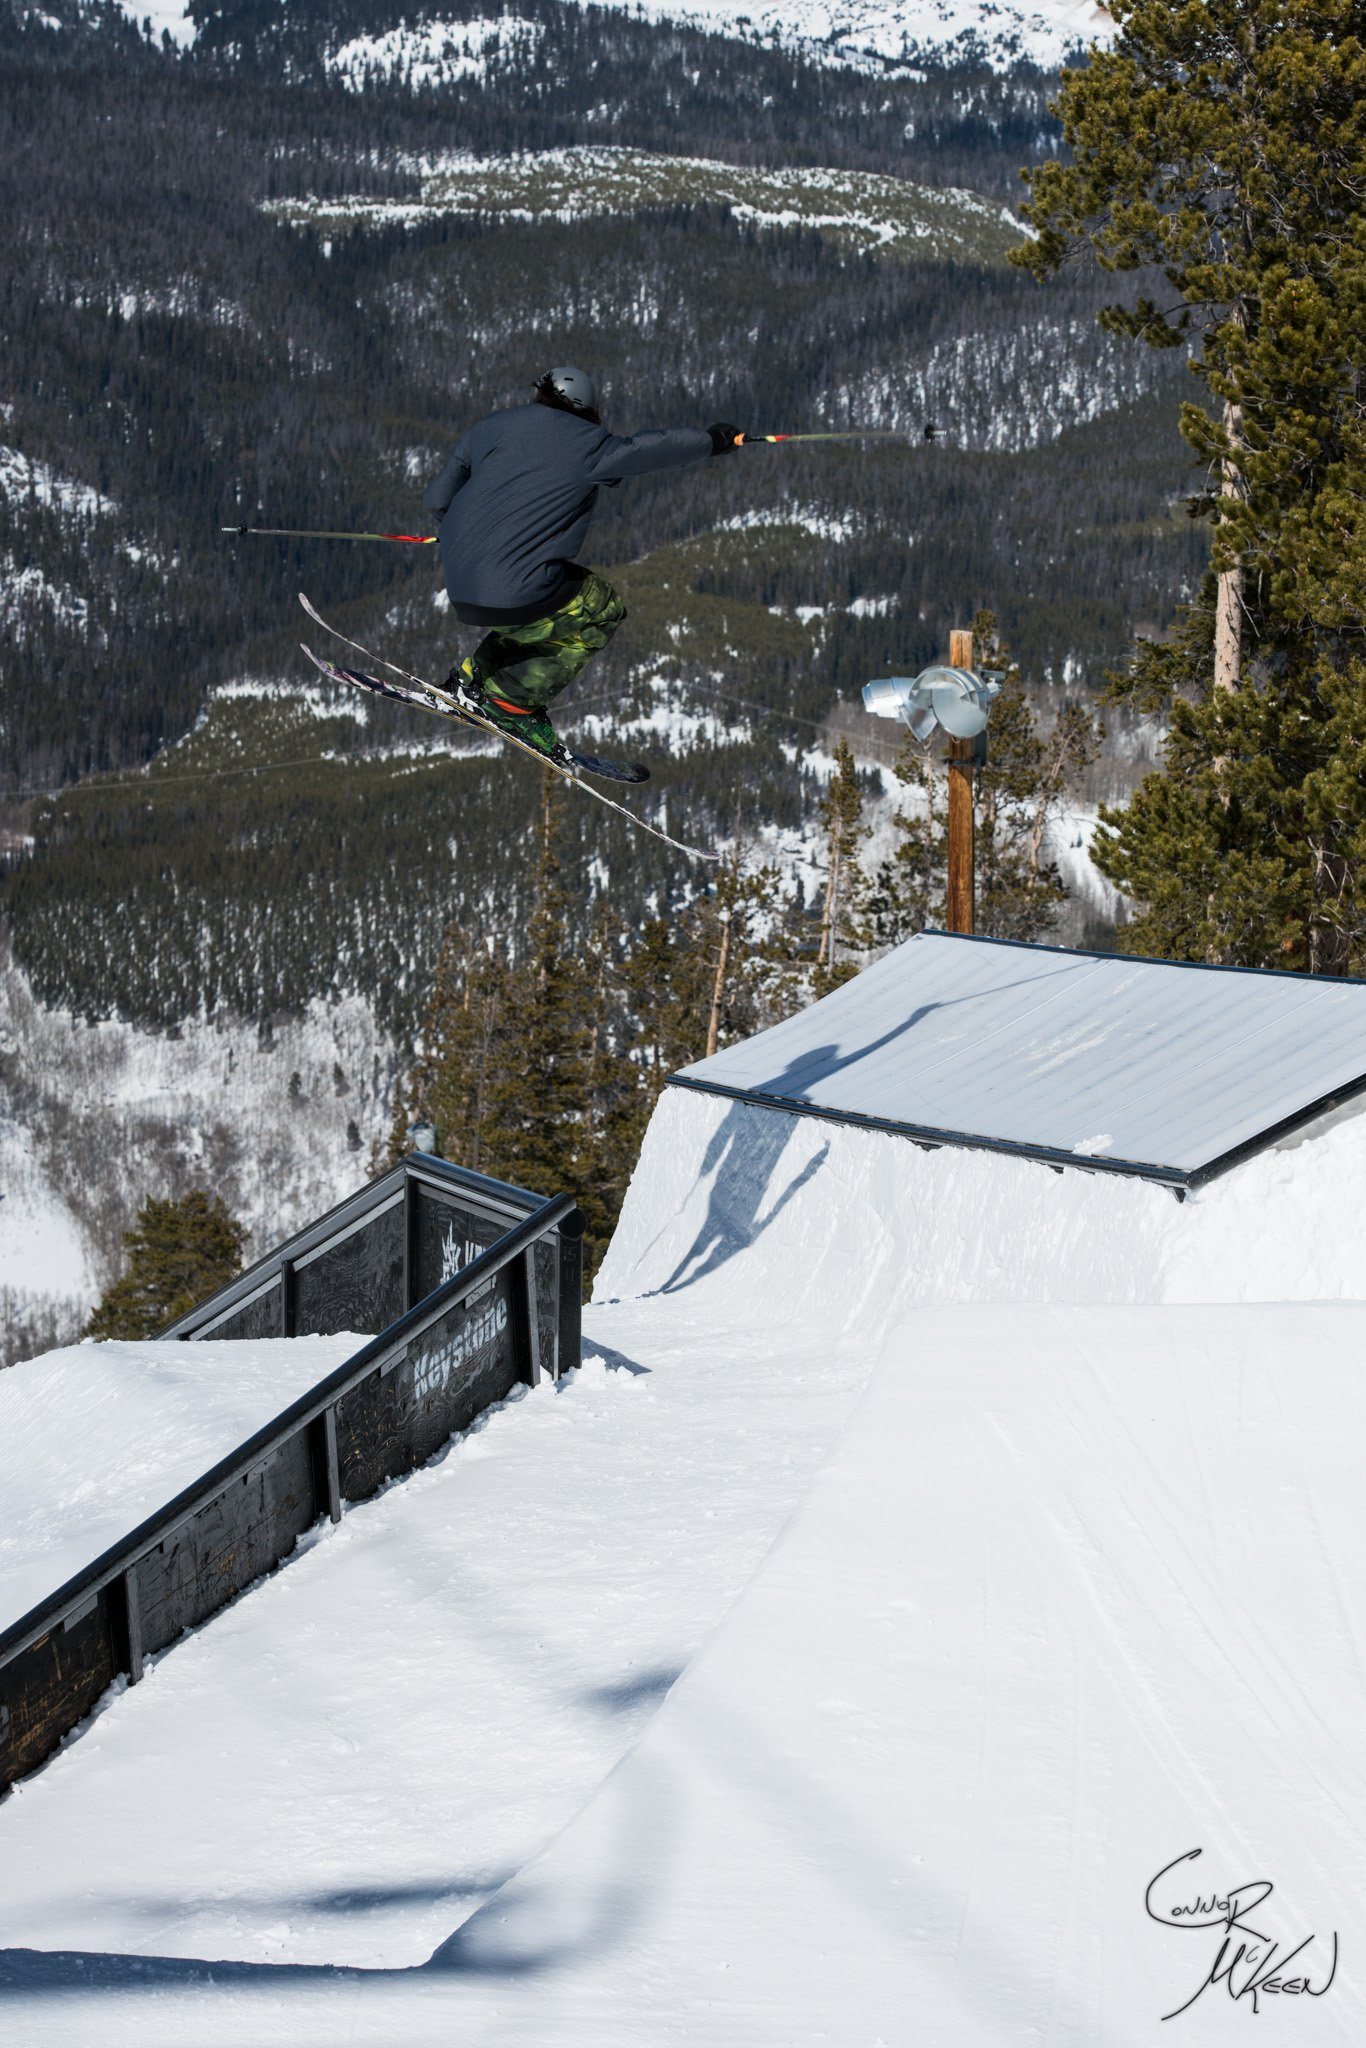 Disaster to the deep end of the rail